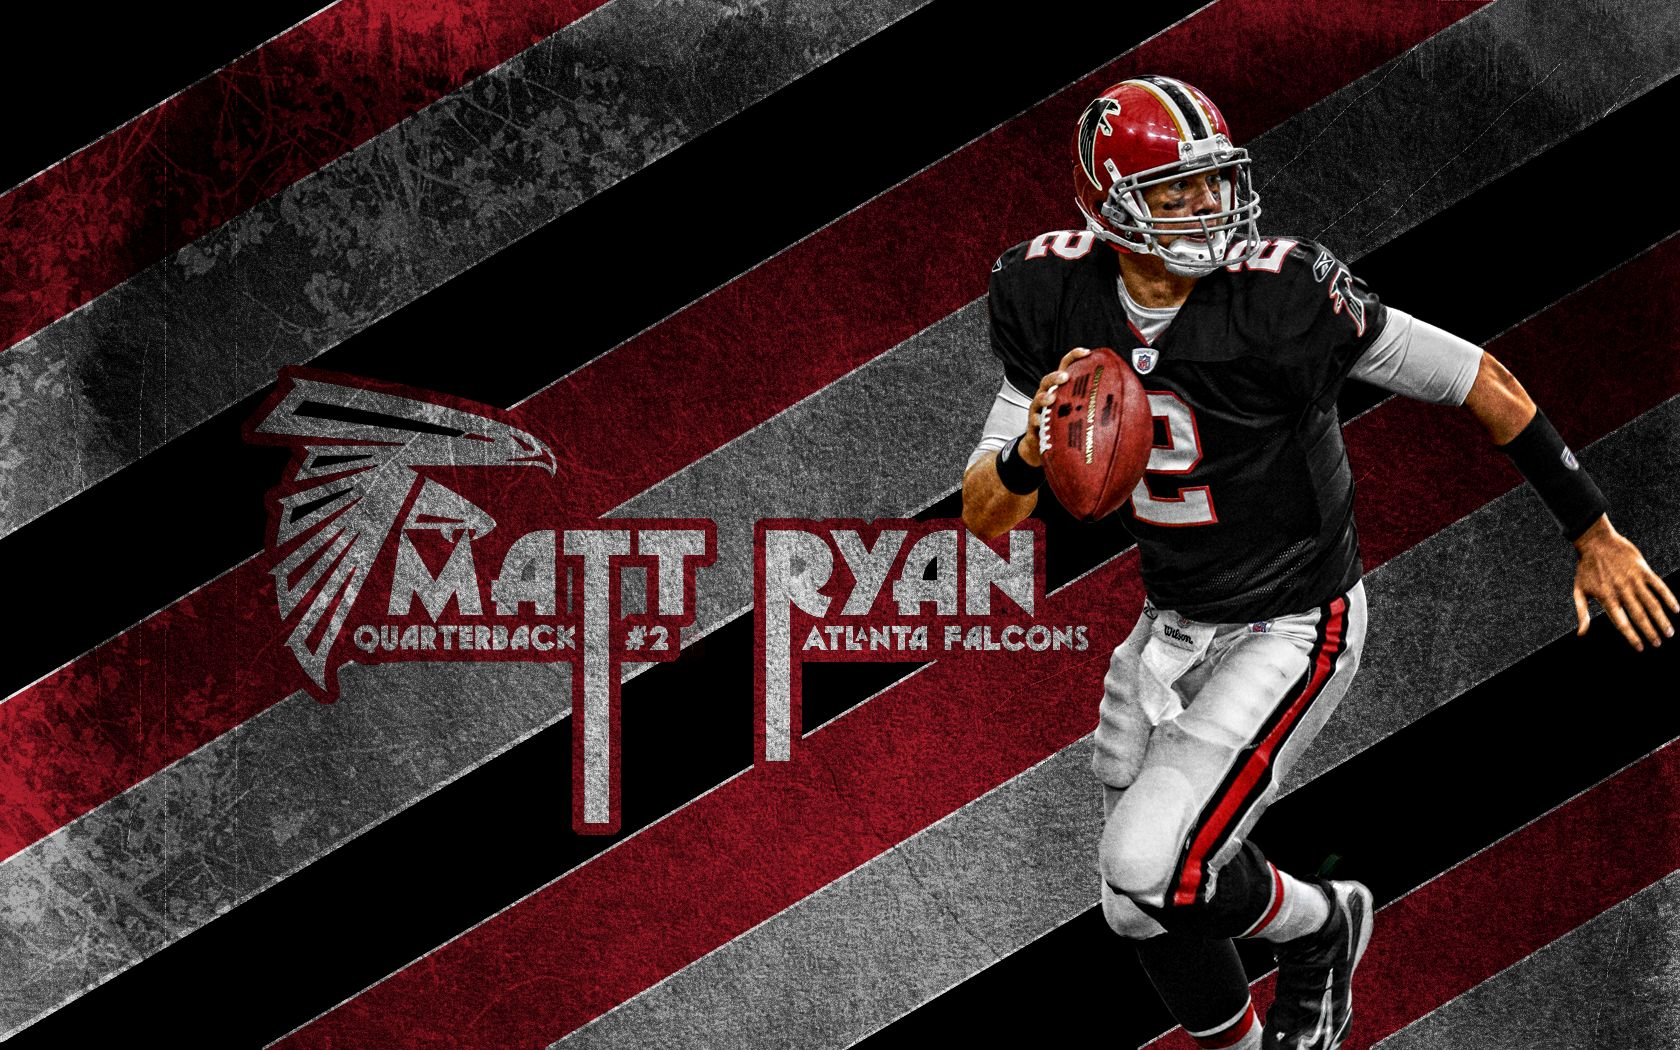 Matt Ryan Nfl Football Wallpaper Atlanta Falcons Wallpaper Football Wallpaper